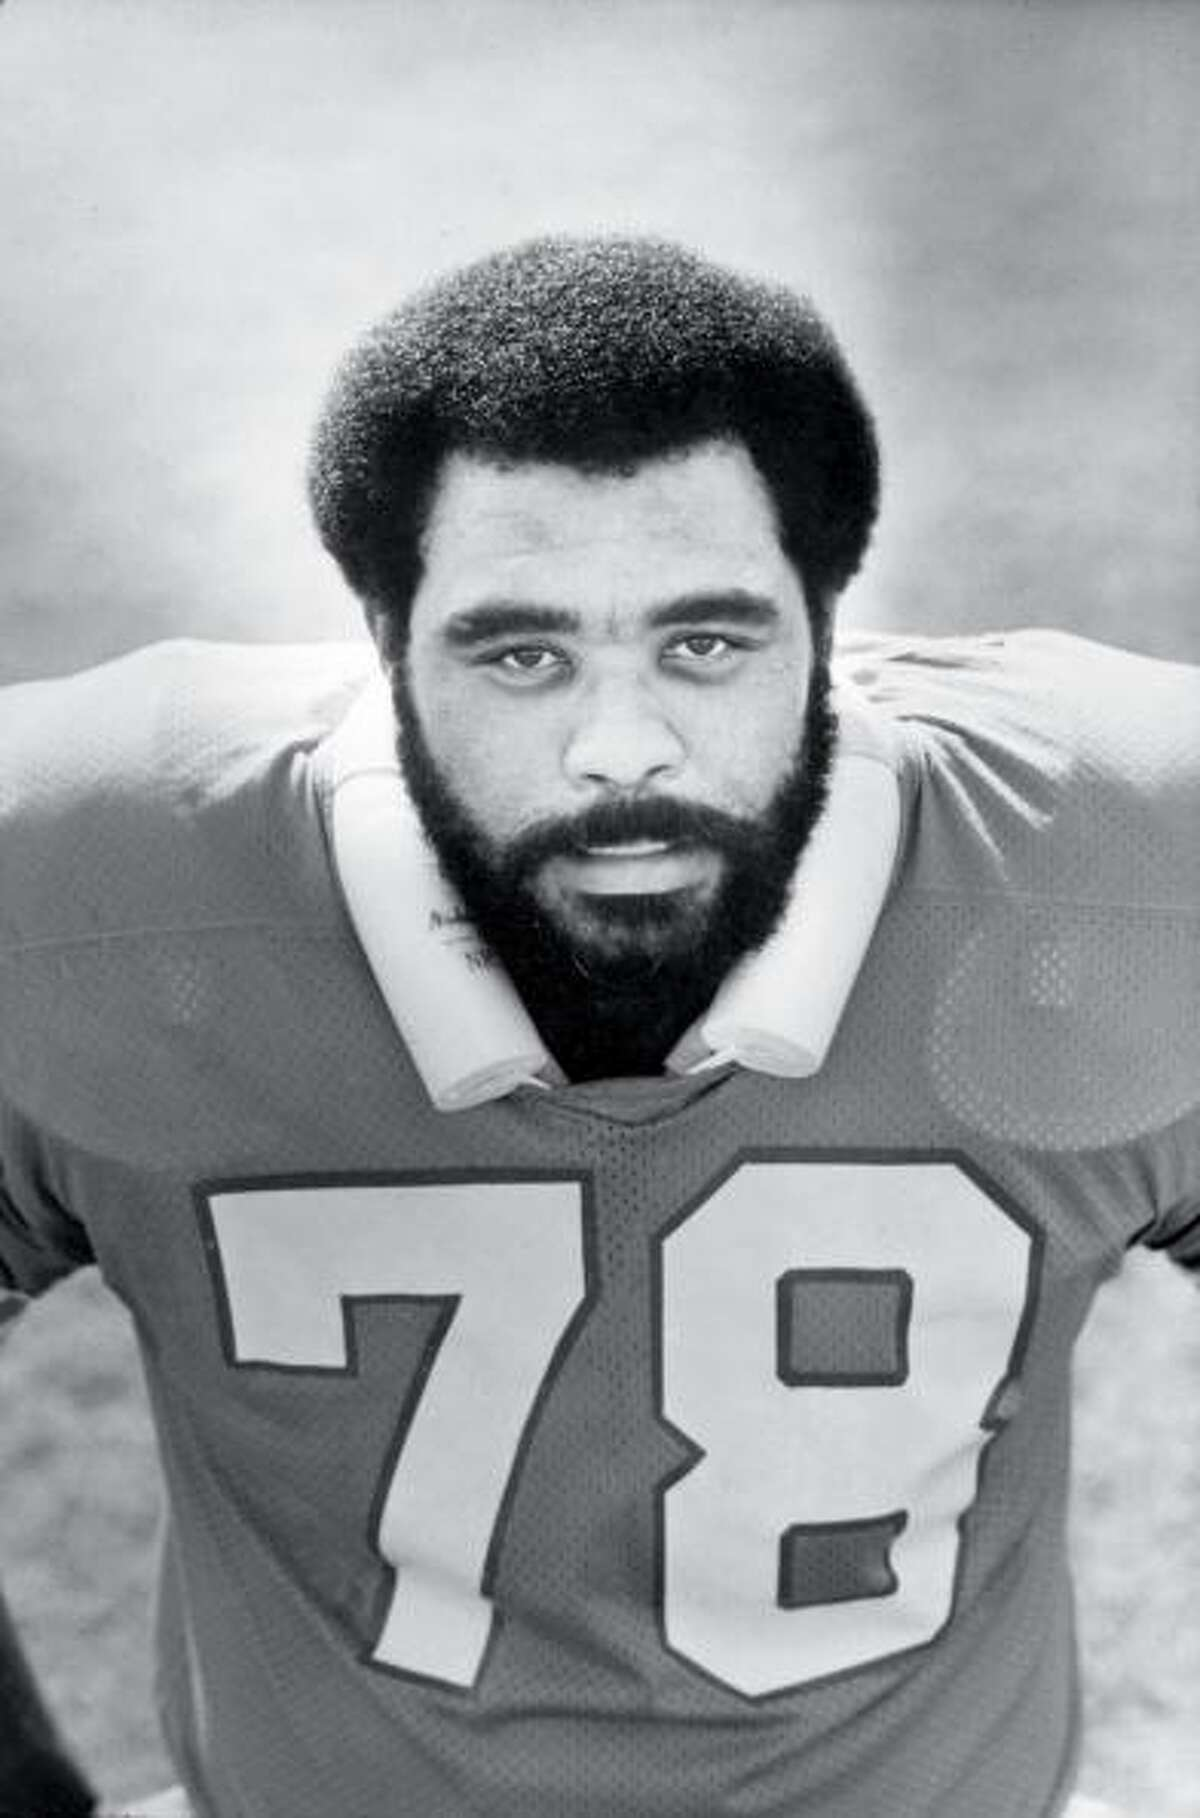 Curley Culp Defensive Tackle Time with the Oilers: 1974-1980 Year of HOF induction: 2013 The six-time Pro Bowler was the NFL's Defensive Player of the Year in 1975.